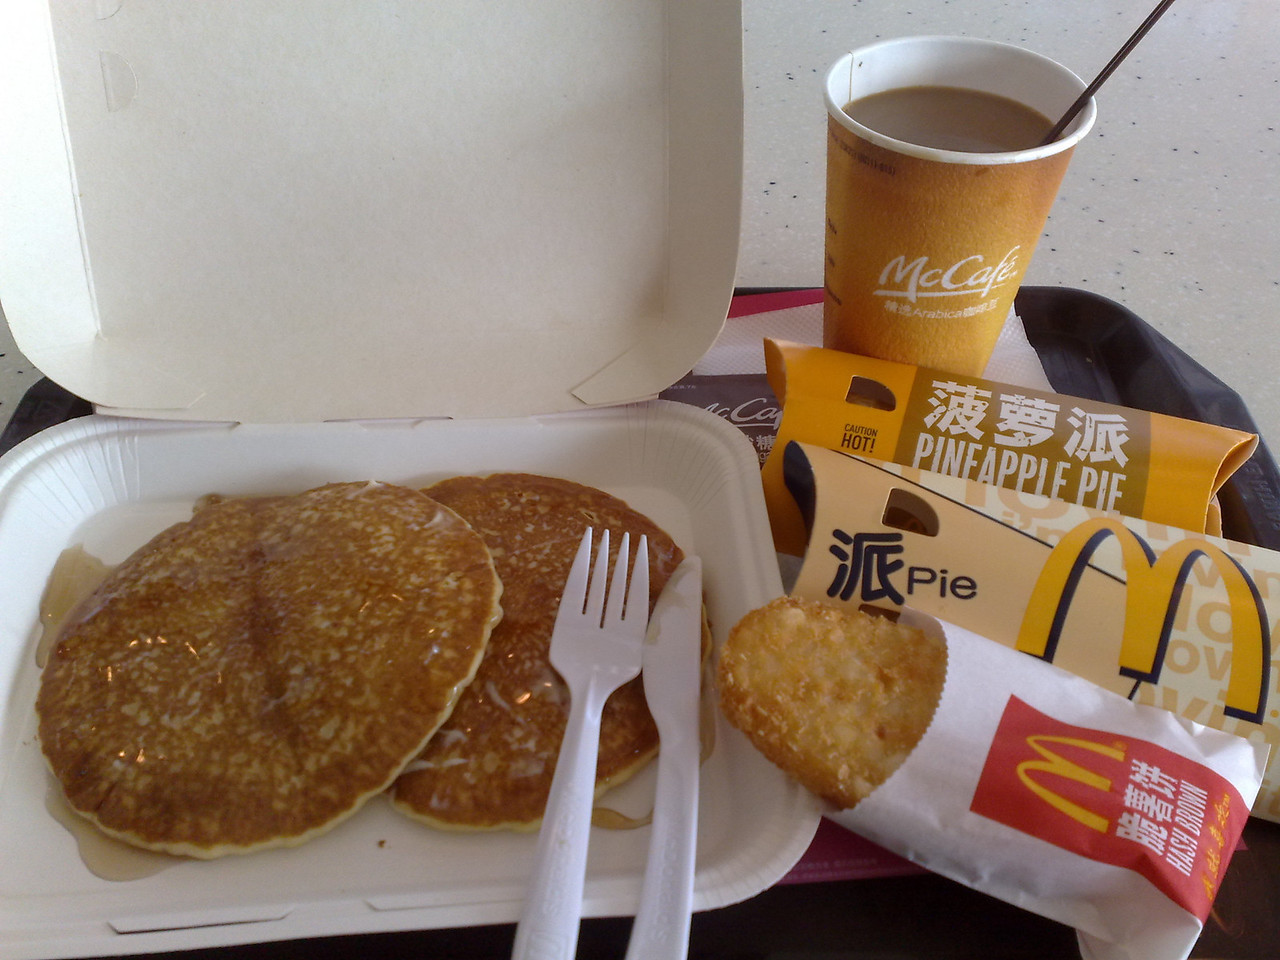 20090902_927 Breakfast at McDonald's. Hotcakes were about 10 RMB (less then $2AUS). The two pies were 7 RMB (for two), including a mango pie. The hash brown was gratis.